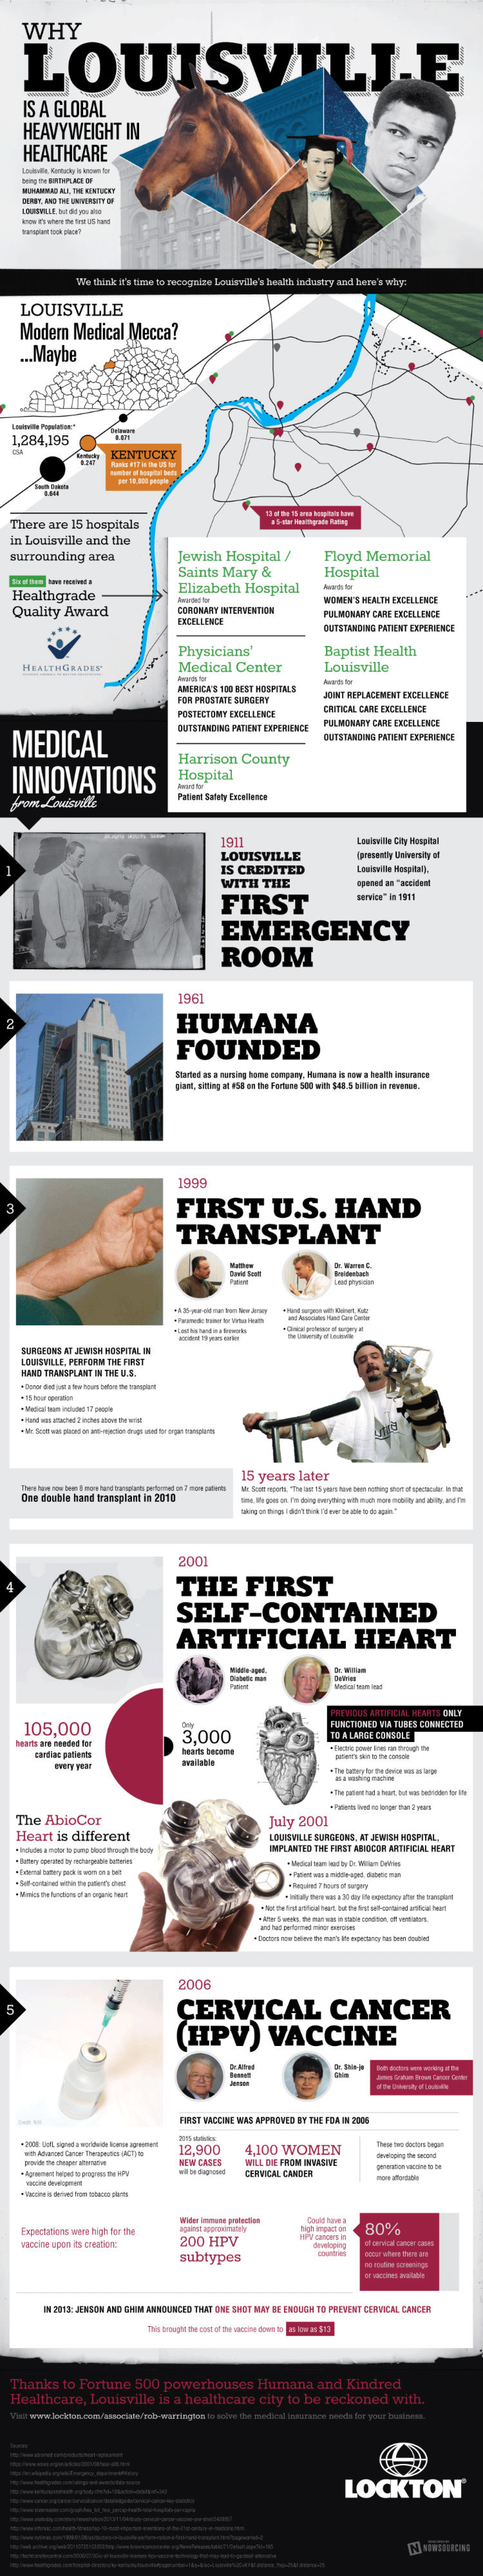 Medical Miracles In Louisville Infographic